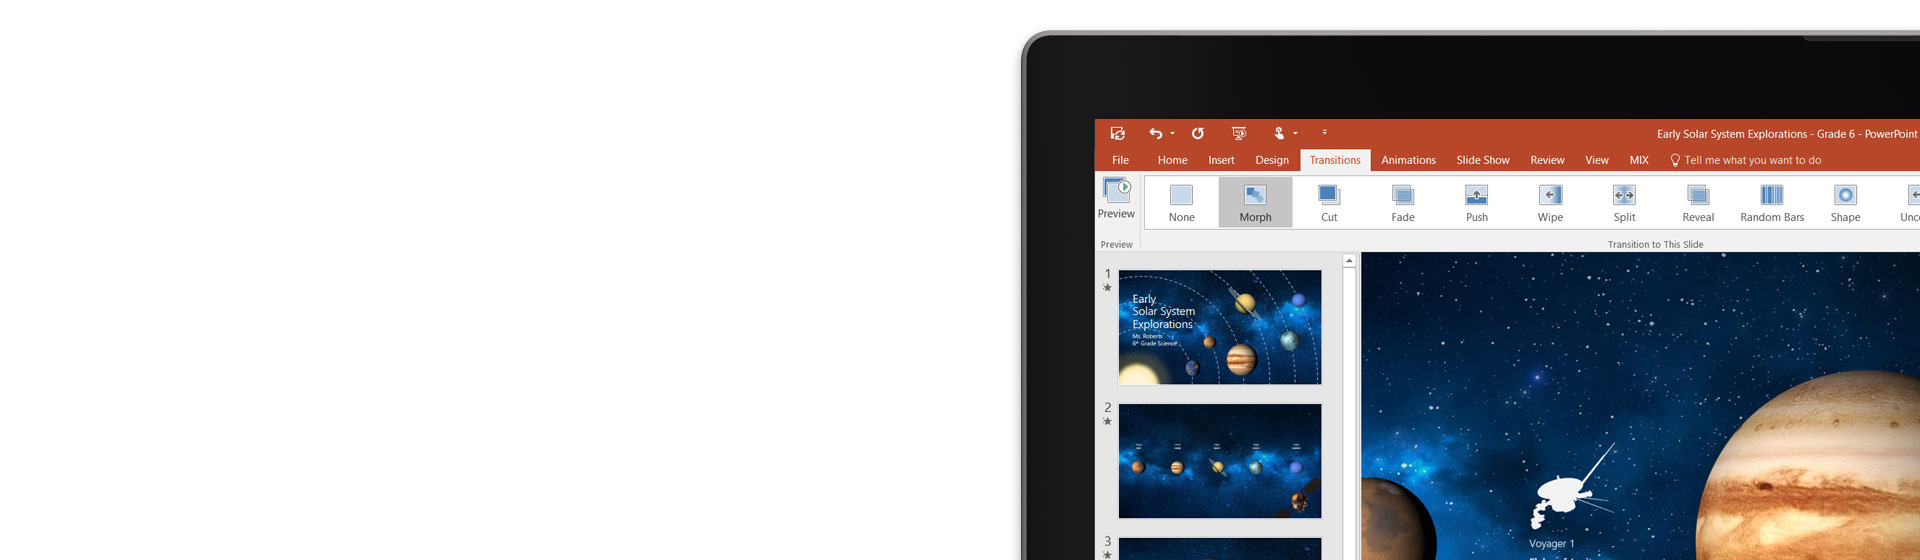 A tablet showing the Morph feature within a PowerPoint presentation slide.